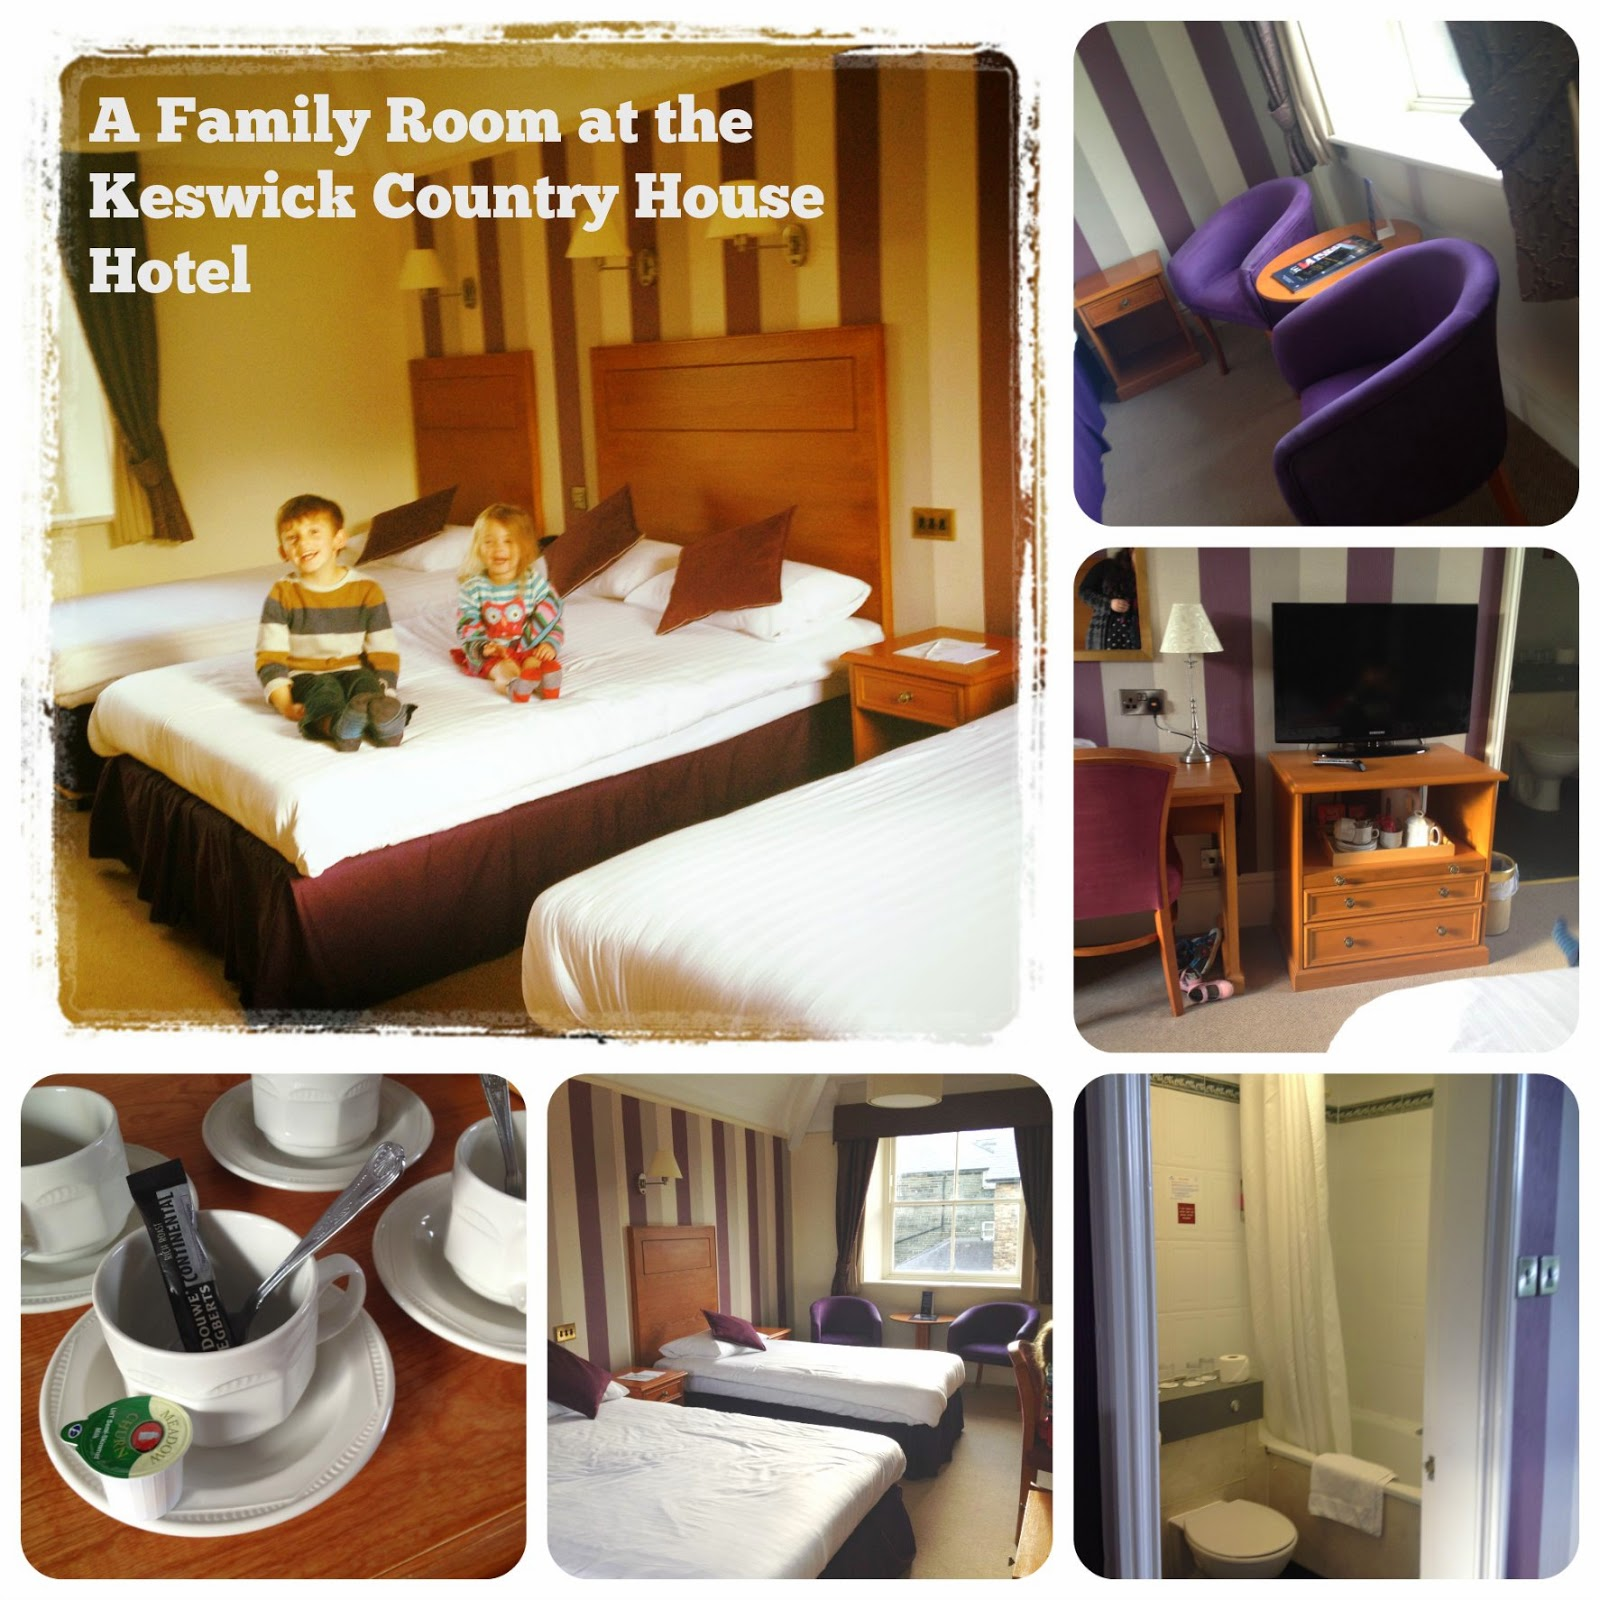 A family room at the Keswick Country House Hotel